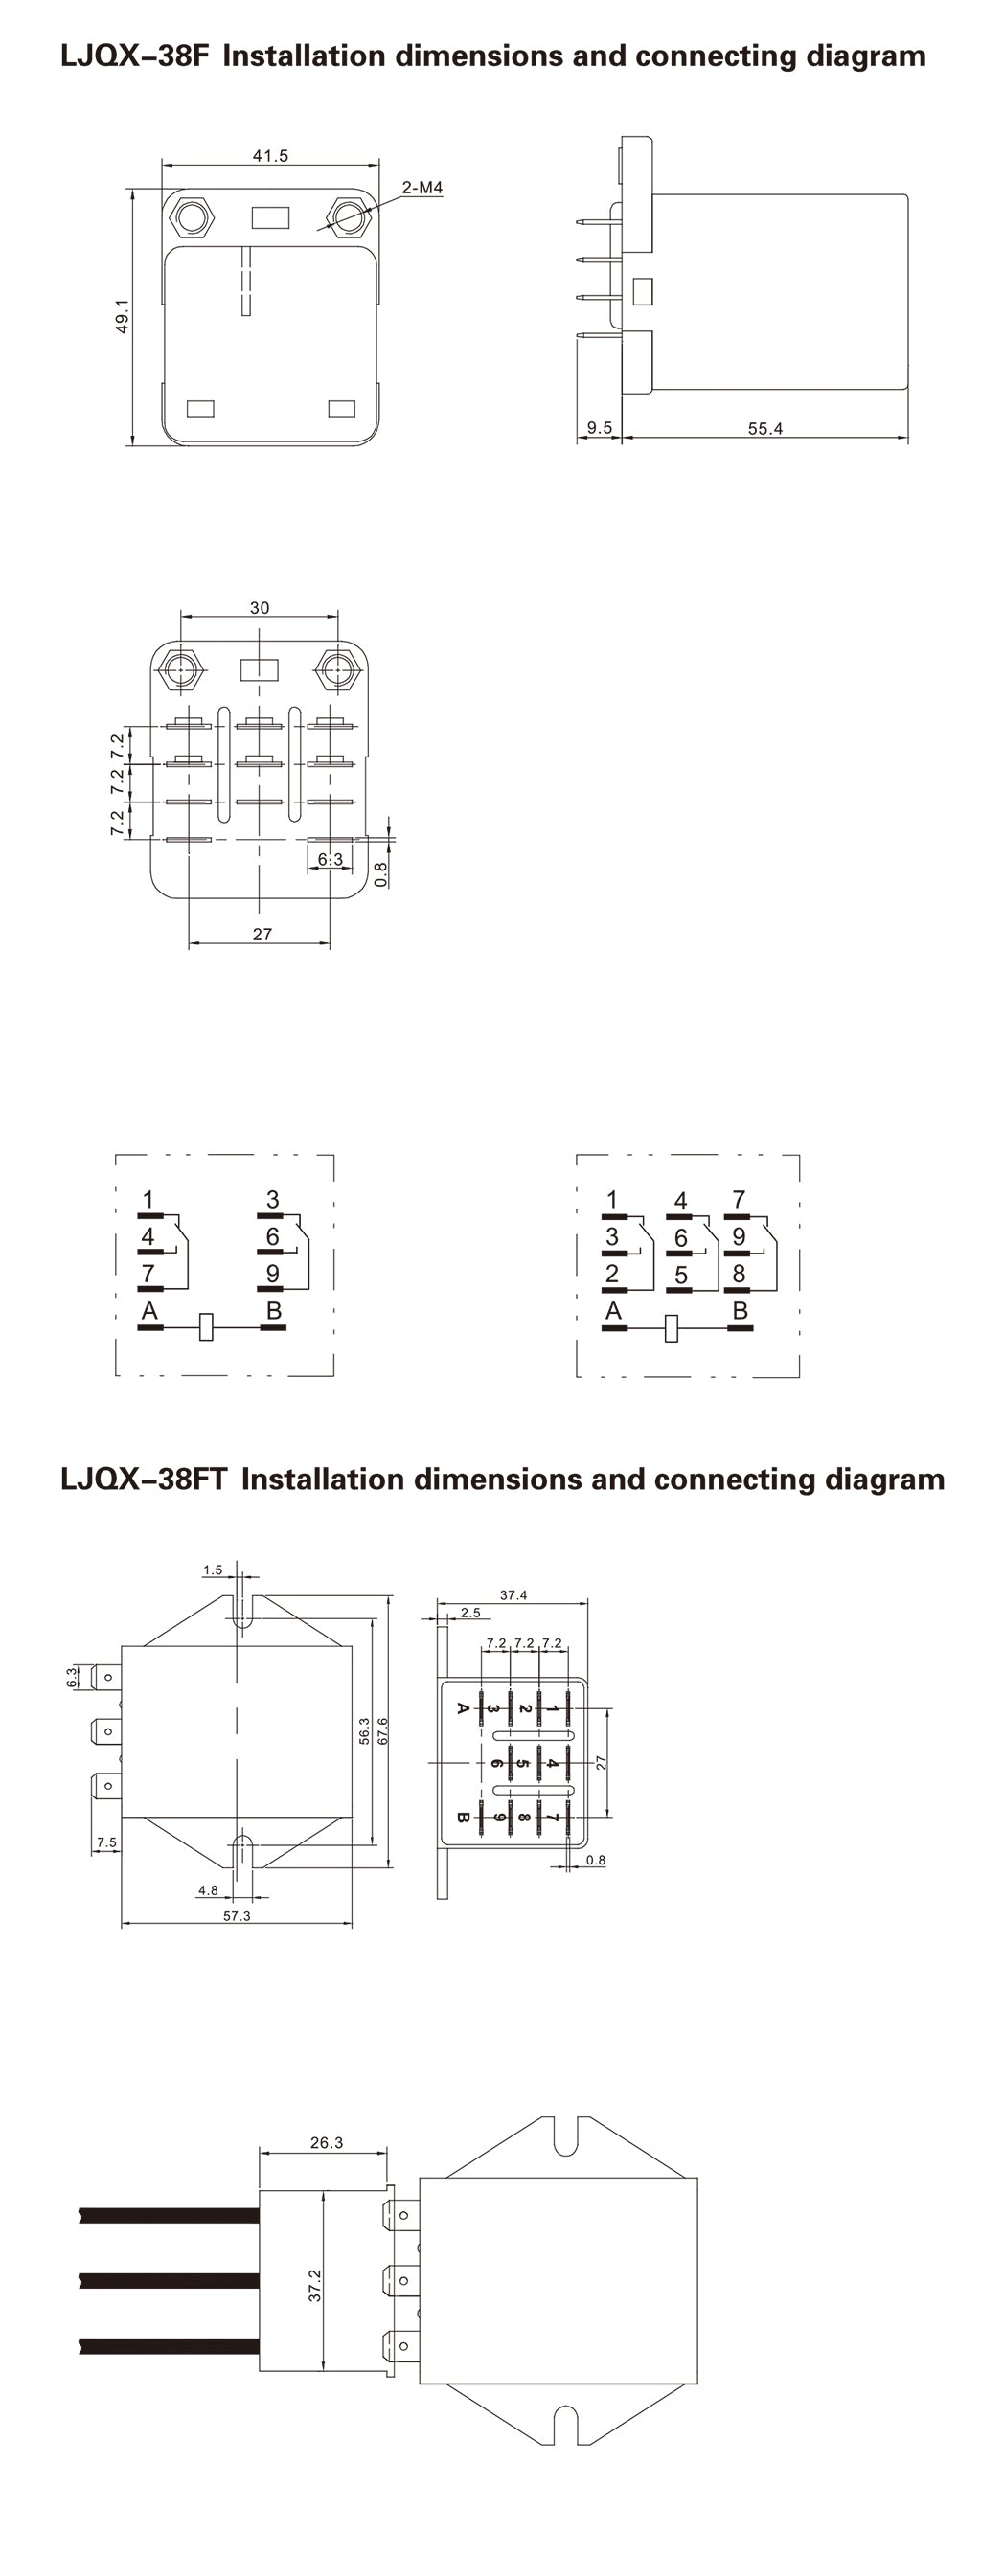 LJQX-38F Installation Dimensions and Connection Diagram